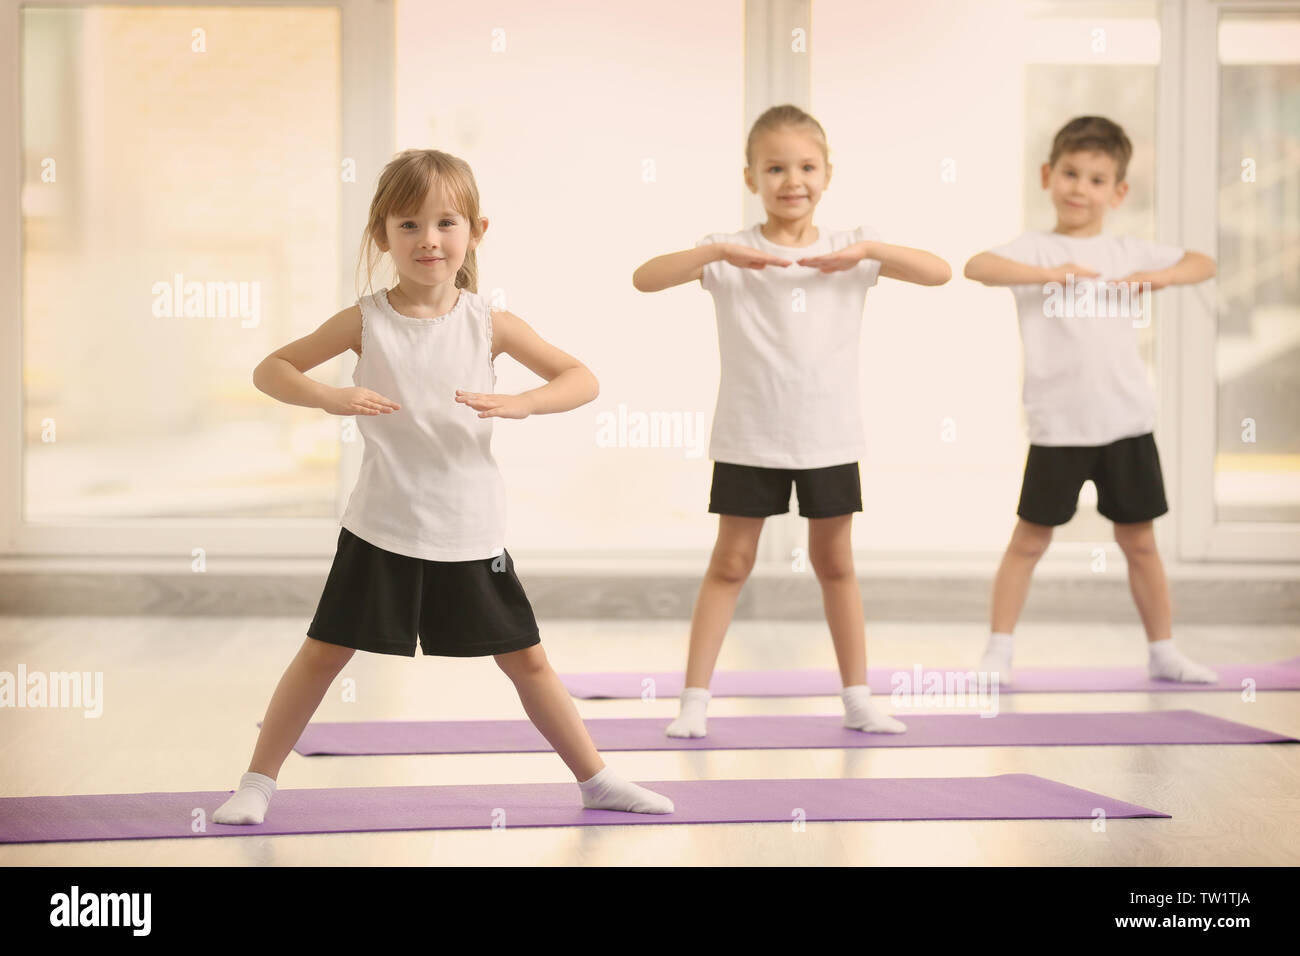 Group Happy Kids Doing Exercises High Resolution Stock Photography And Images Alamy